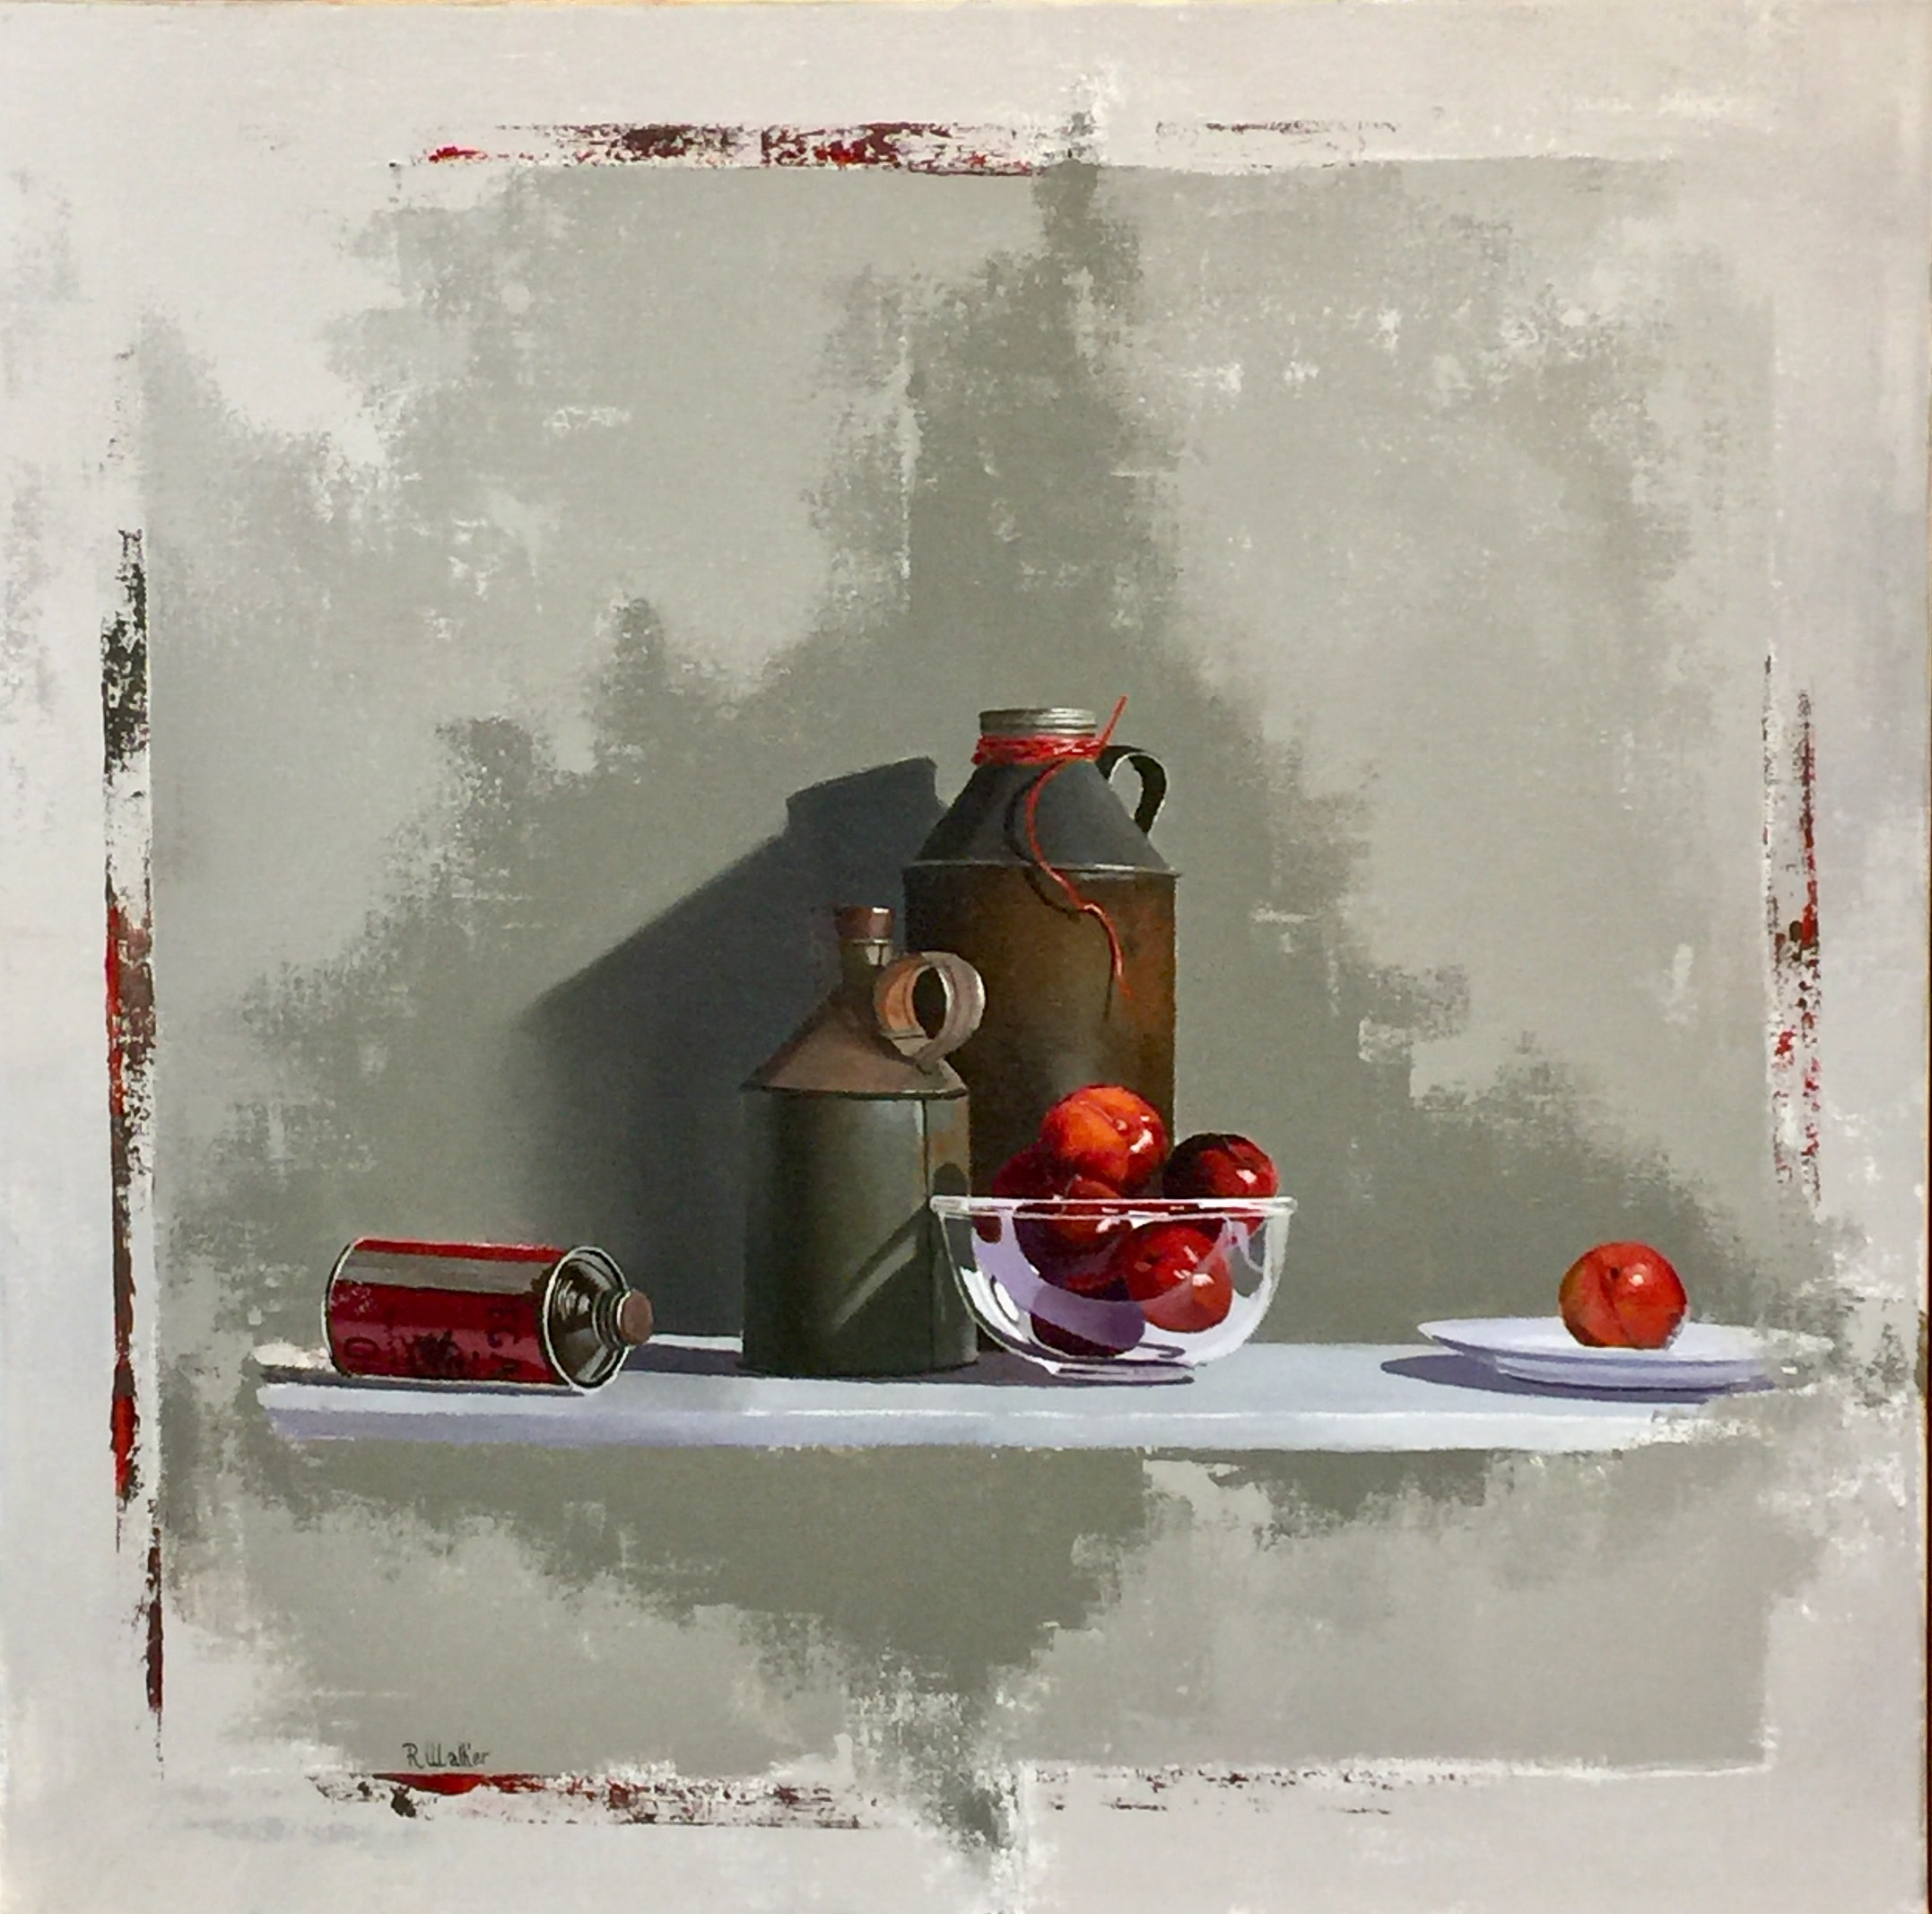 <span class=&#34;link fancybox-details-link&#34;><a href=&#34;/artists/67-robert-walker/works/2288-robert-walker-red-string-can-with-plums-in-hong-kong/&#34;>View Detail Page</a></span><div class=&#34;artist&#34;><strong>Robert Walker</strong></div> <div class=&#34;title&#34;><em>Red String Can with Plums</em>, In Hong Kong</div> <div class=&#34;medium&#34;>Oil on Canvas </div> <div class=&#34;dimensions&#34;>60 x 60 cm </div><div class=&#34;price&#34;>HK$17,000.00</div><div class=&#34;copyright_line&#34;>Copyright The Artist</div>